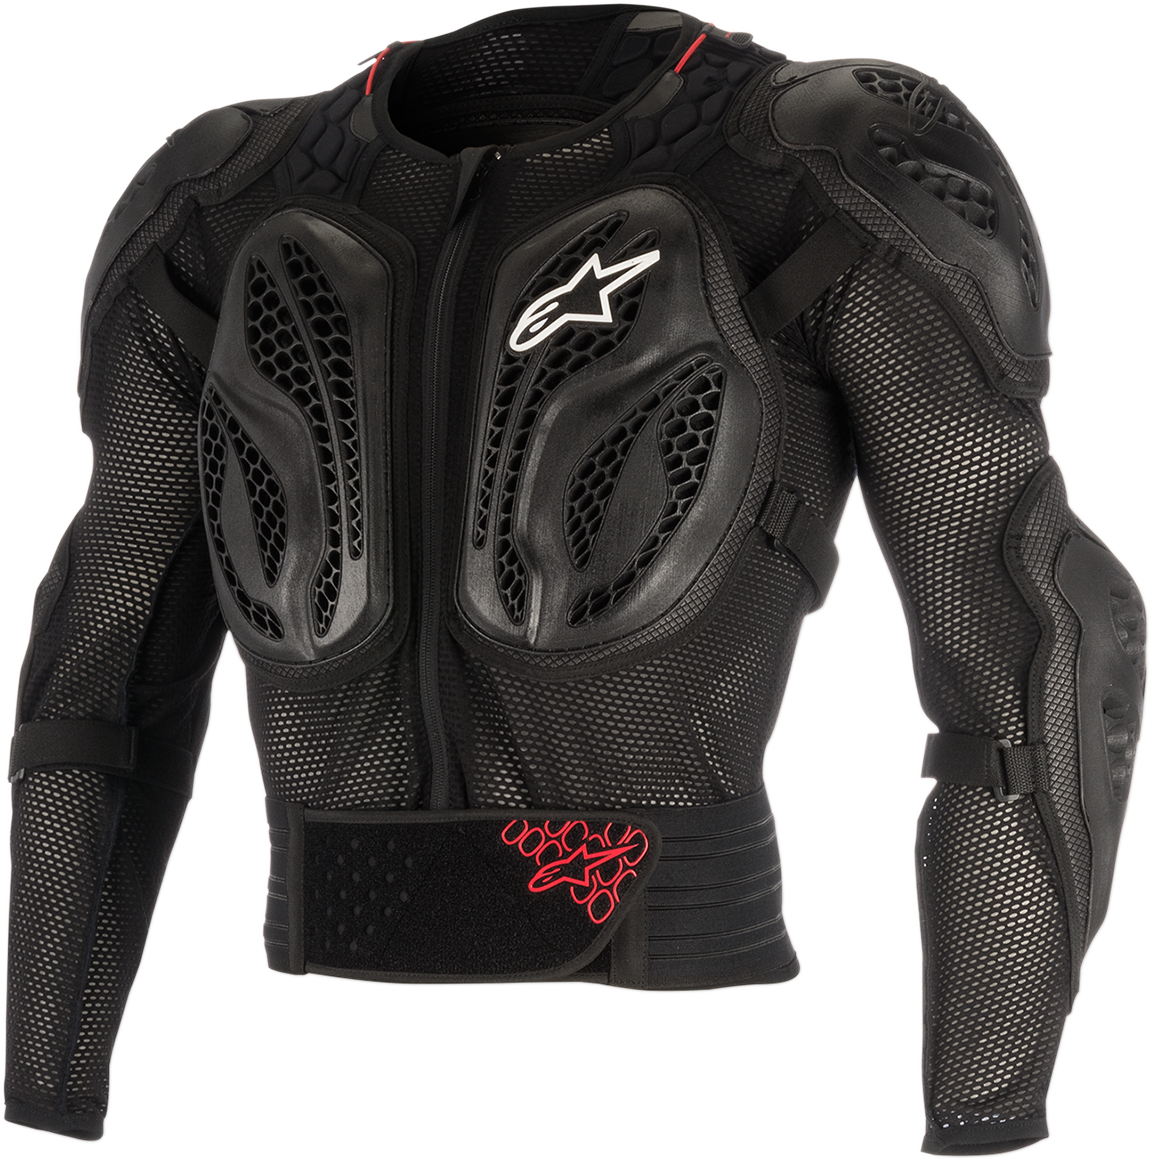 Alpinestars Mens Black Bionic Action Off road Riding Dirt Bike Racing Jacket